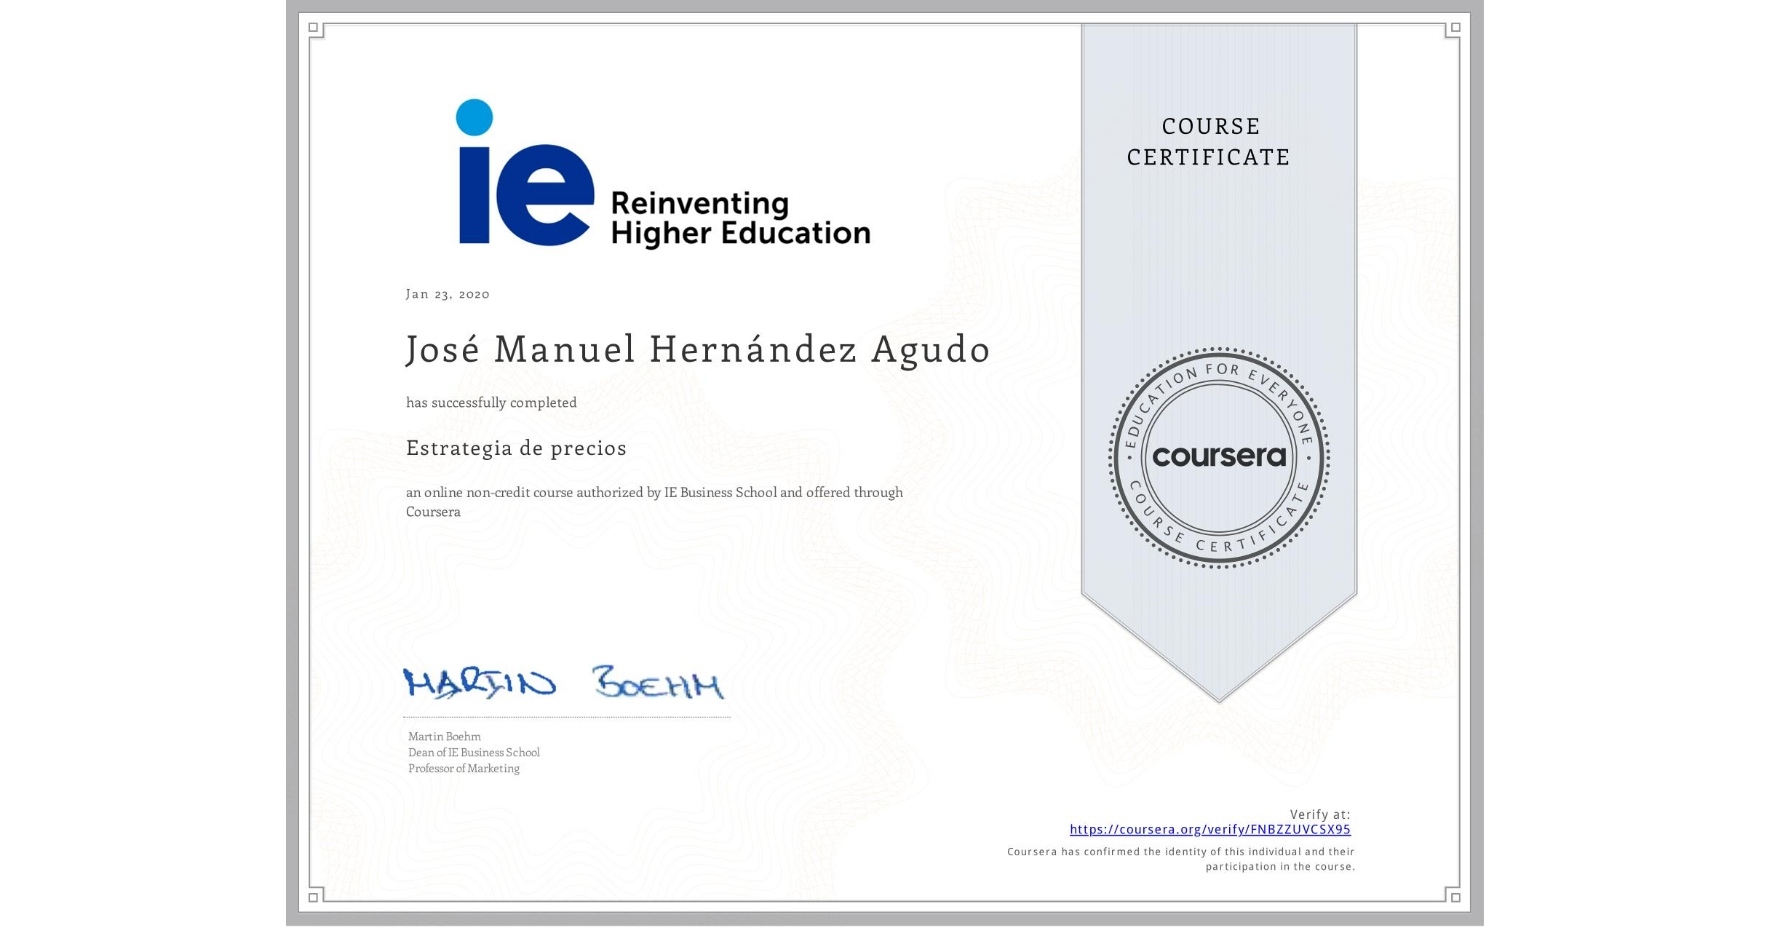 View certificate for José Manuel  Hernández Agudo, Estrategia de precios, an online non-credit course authorized by IE Business School and offered through Coursera